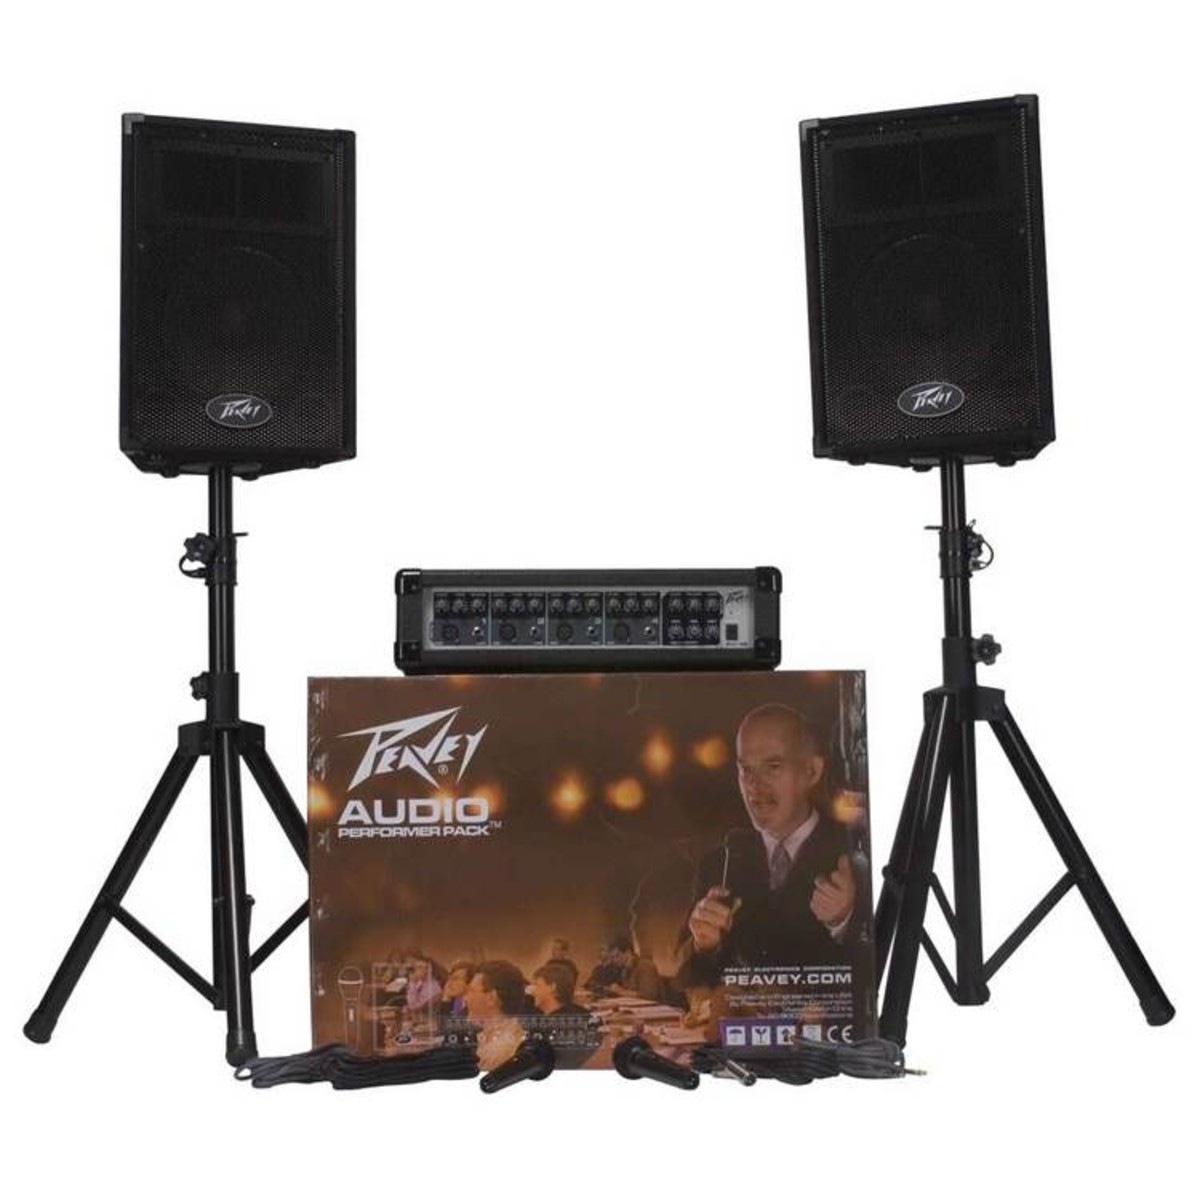 peavey audio performer pack portable pa system at. Black Bedroom Furniture Sets. Home Design Ideas